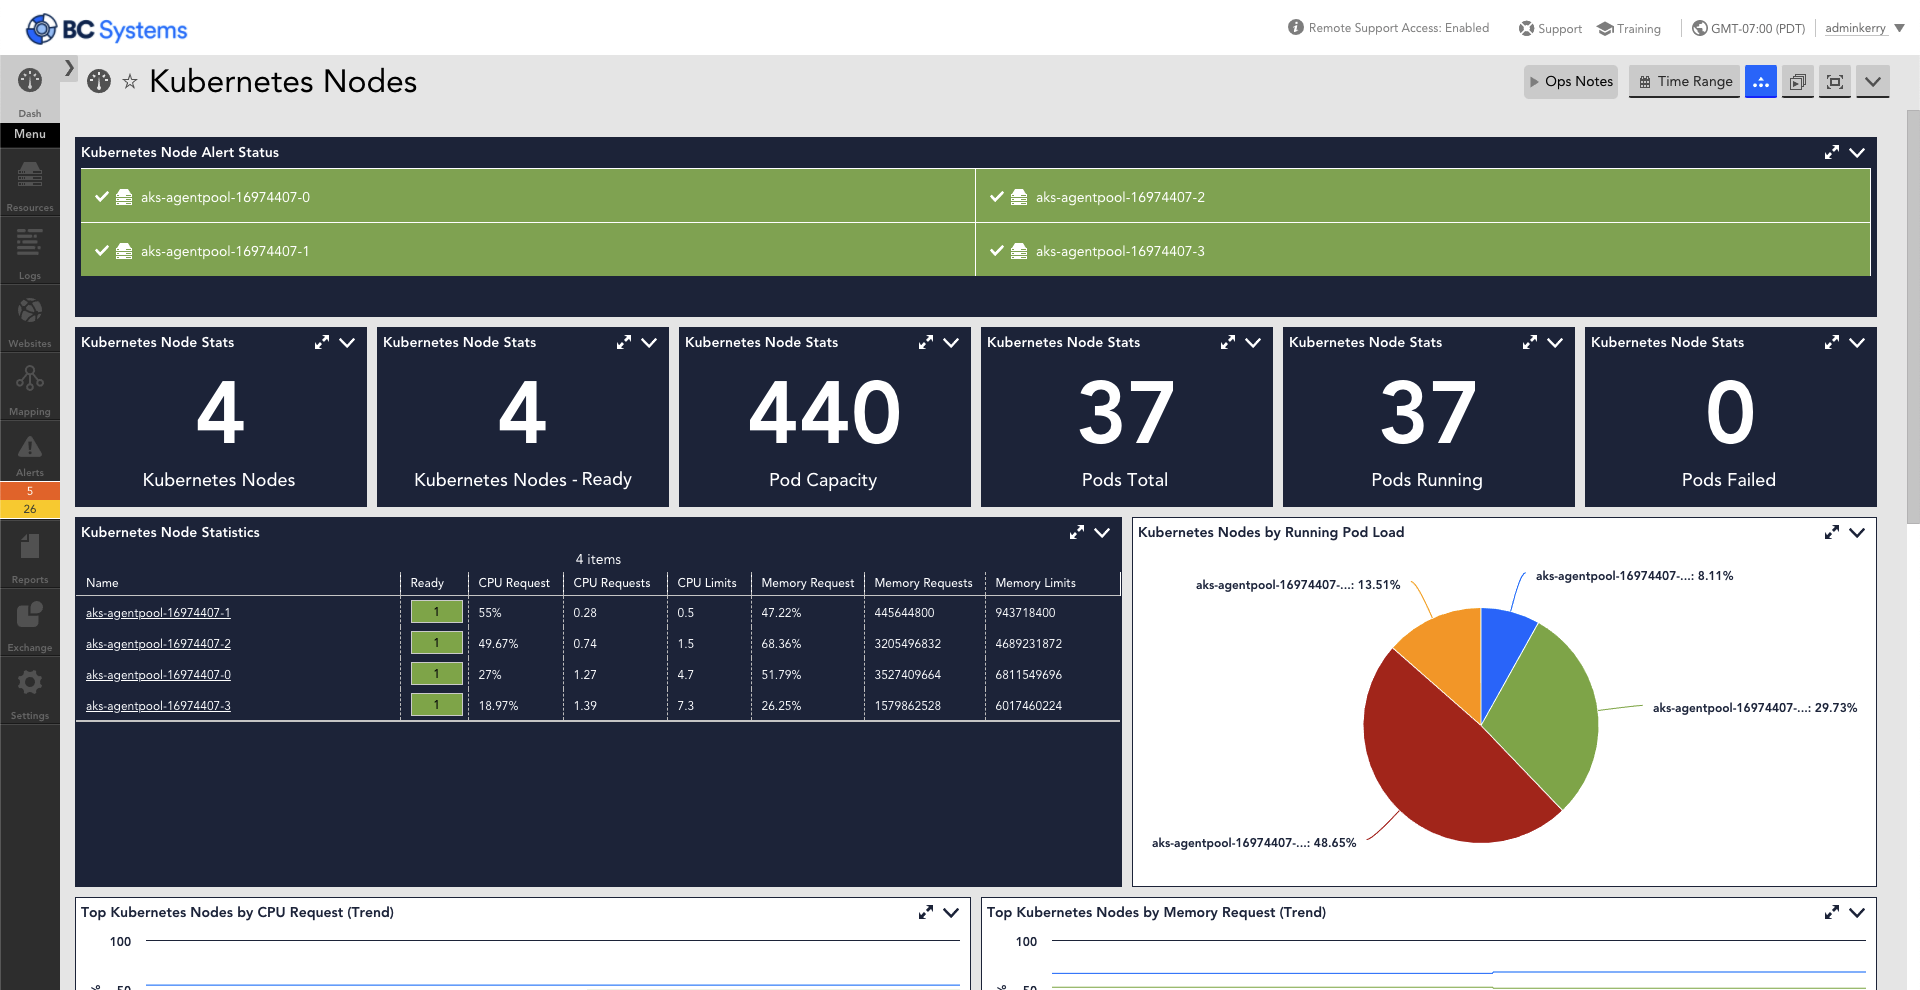 http://This%20dashboard%20provides%20various%20metrics%20that%20are%20monitored%20for%20Kubernetes%20Nodes%20using%20the%20Kubernetes%20cluster%20API.